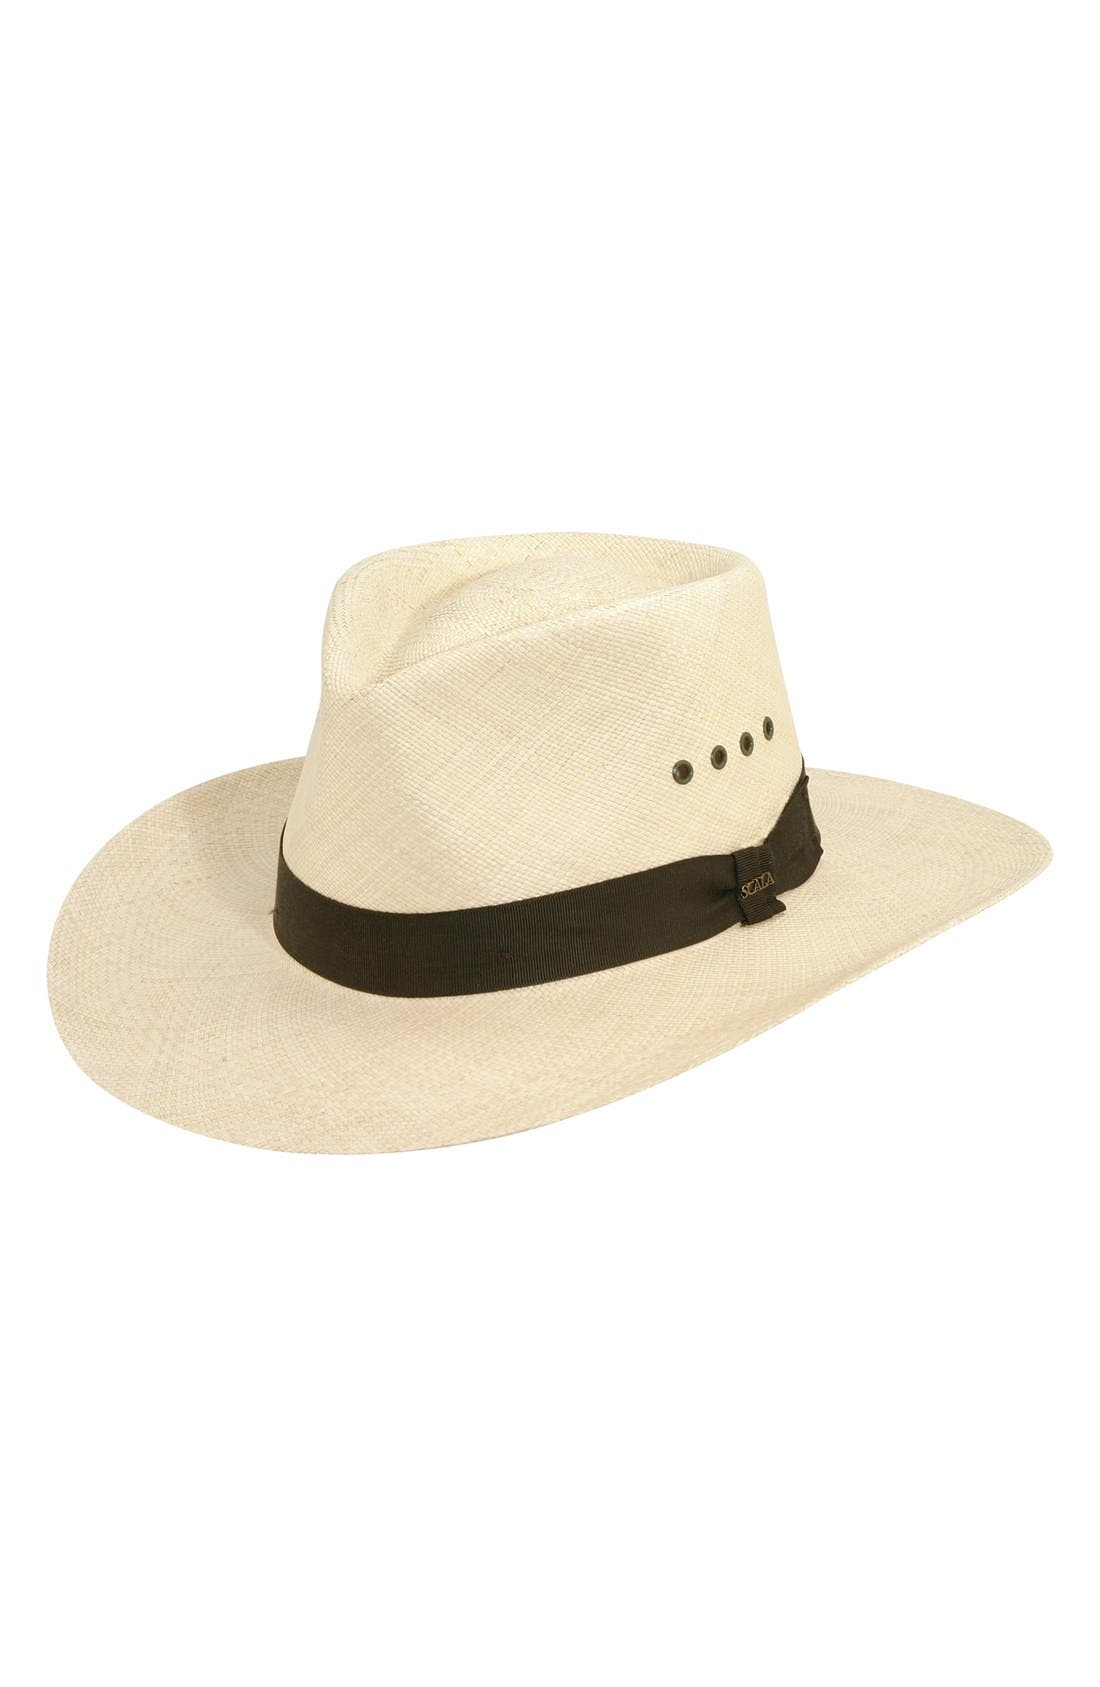 Straw Outback Hat,                         Main,                         color,